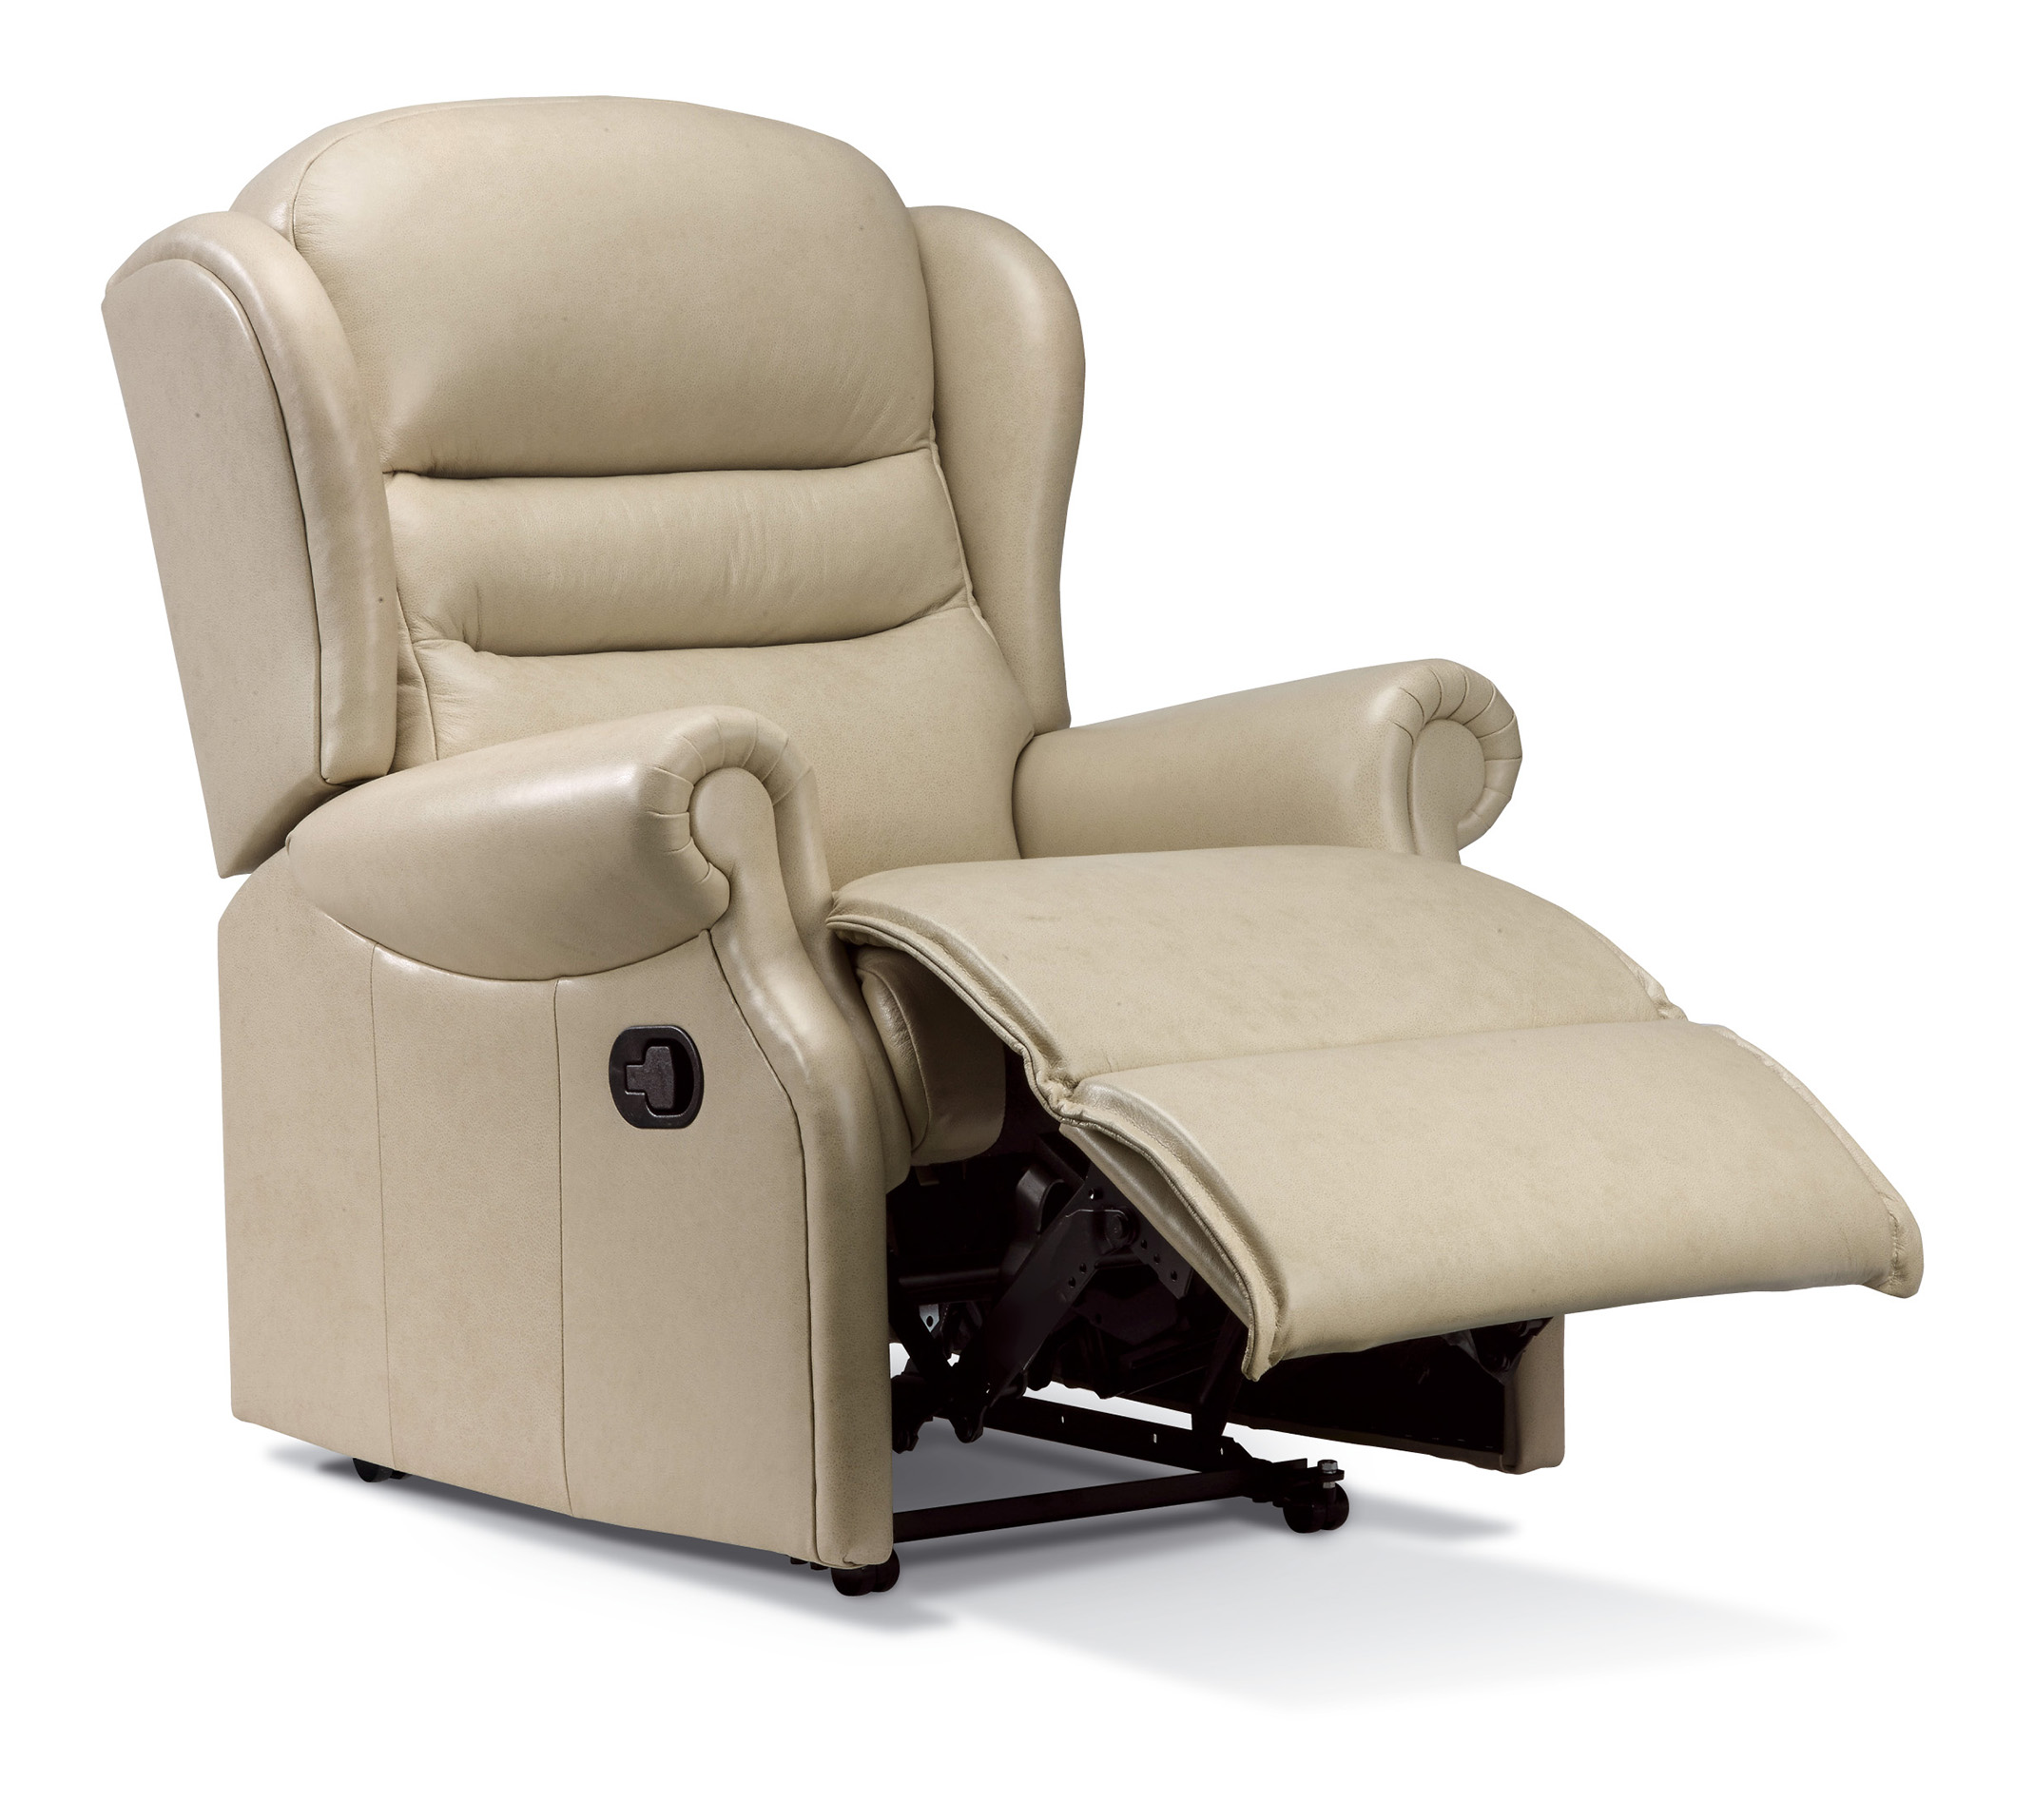 Windsor Small Fabric Lift Rise Recliner as well Small Lift Rise Recliner also Ashford Small Leather Manualpowered Recliner furthermore Lynton Small Leather Manualpowered Recliner furthermore Sherborne Milburn Small Manual Power. on keswick small recliner